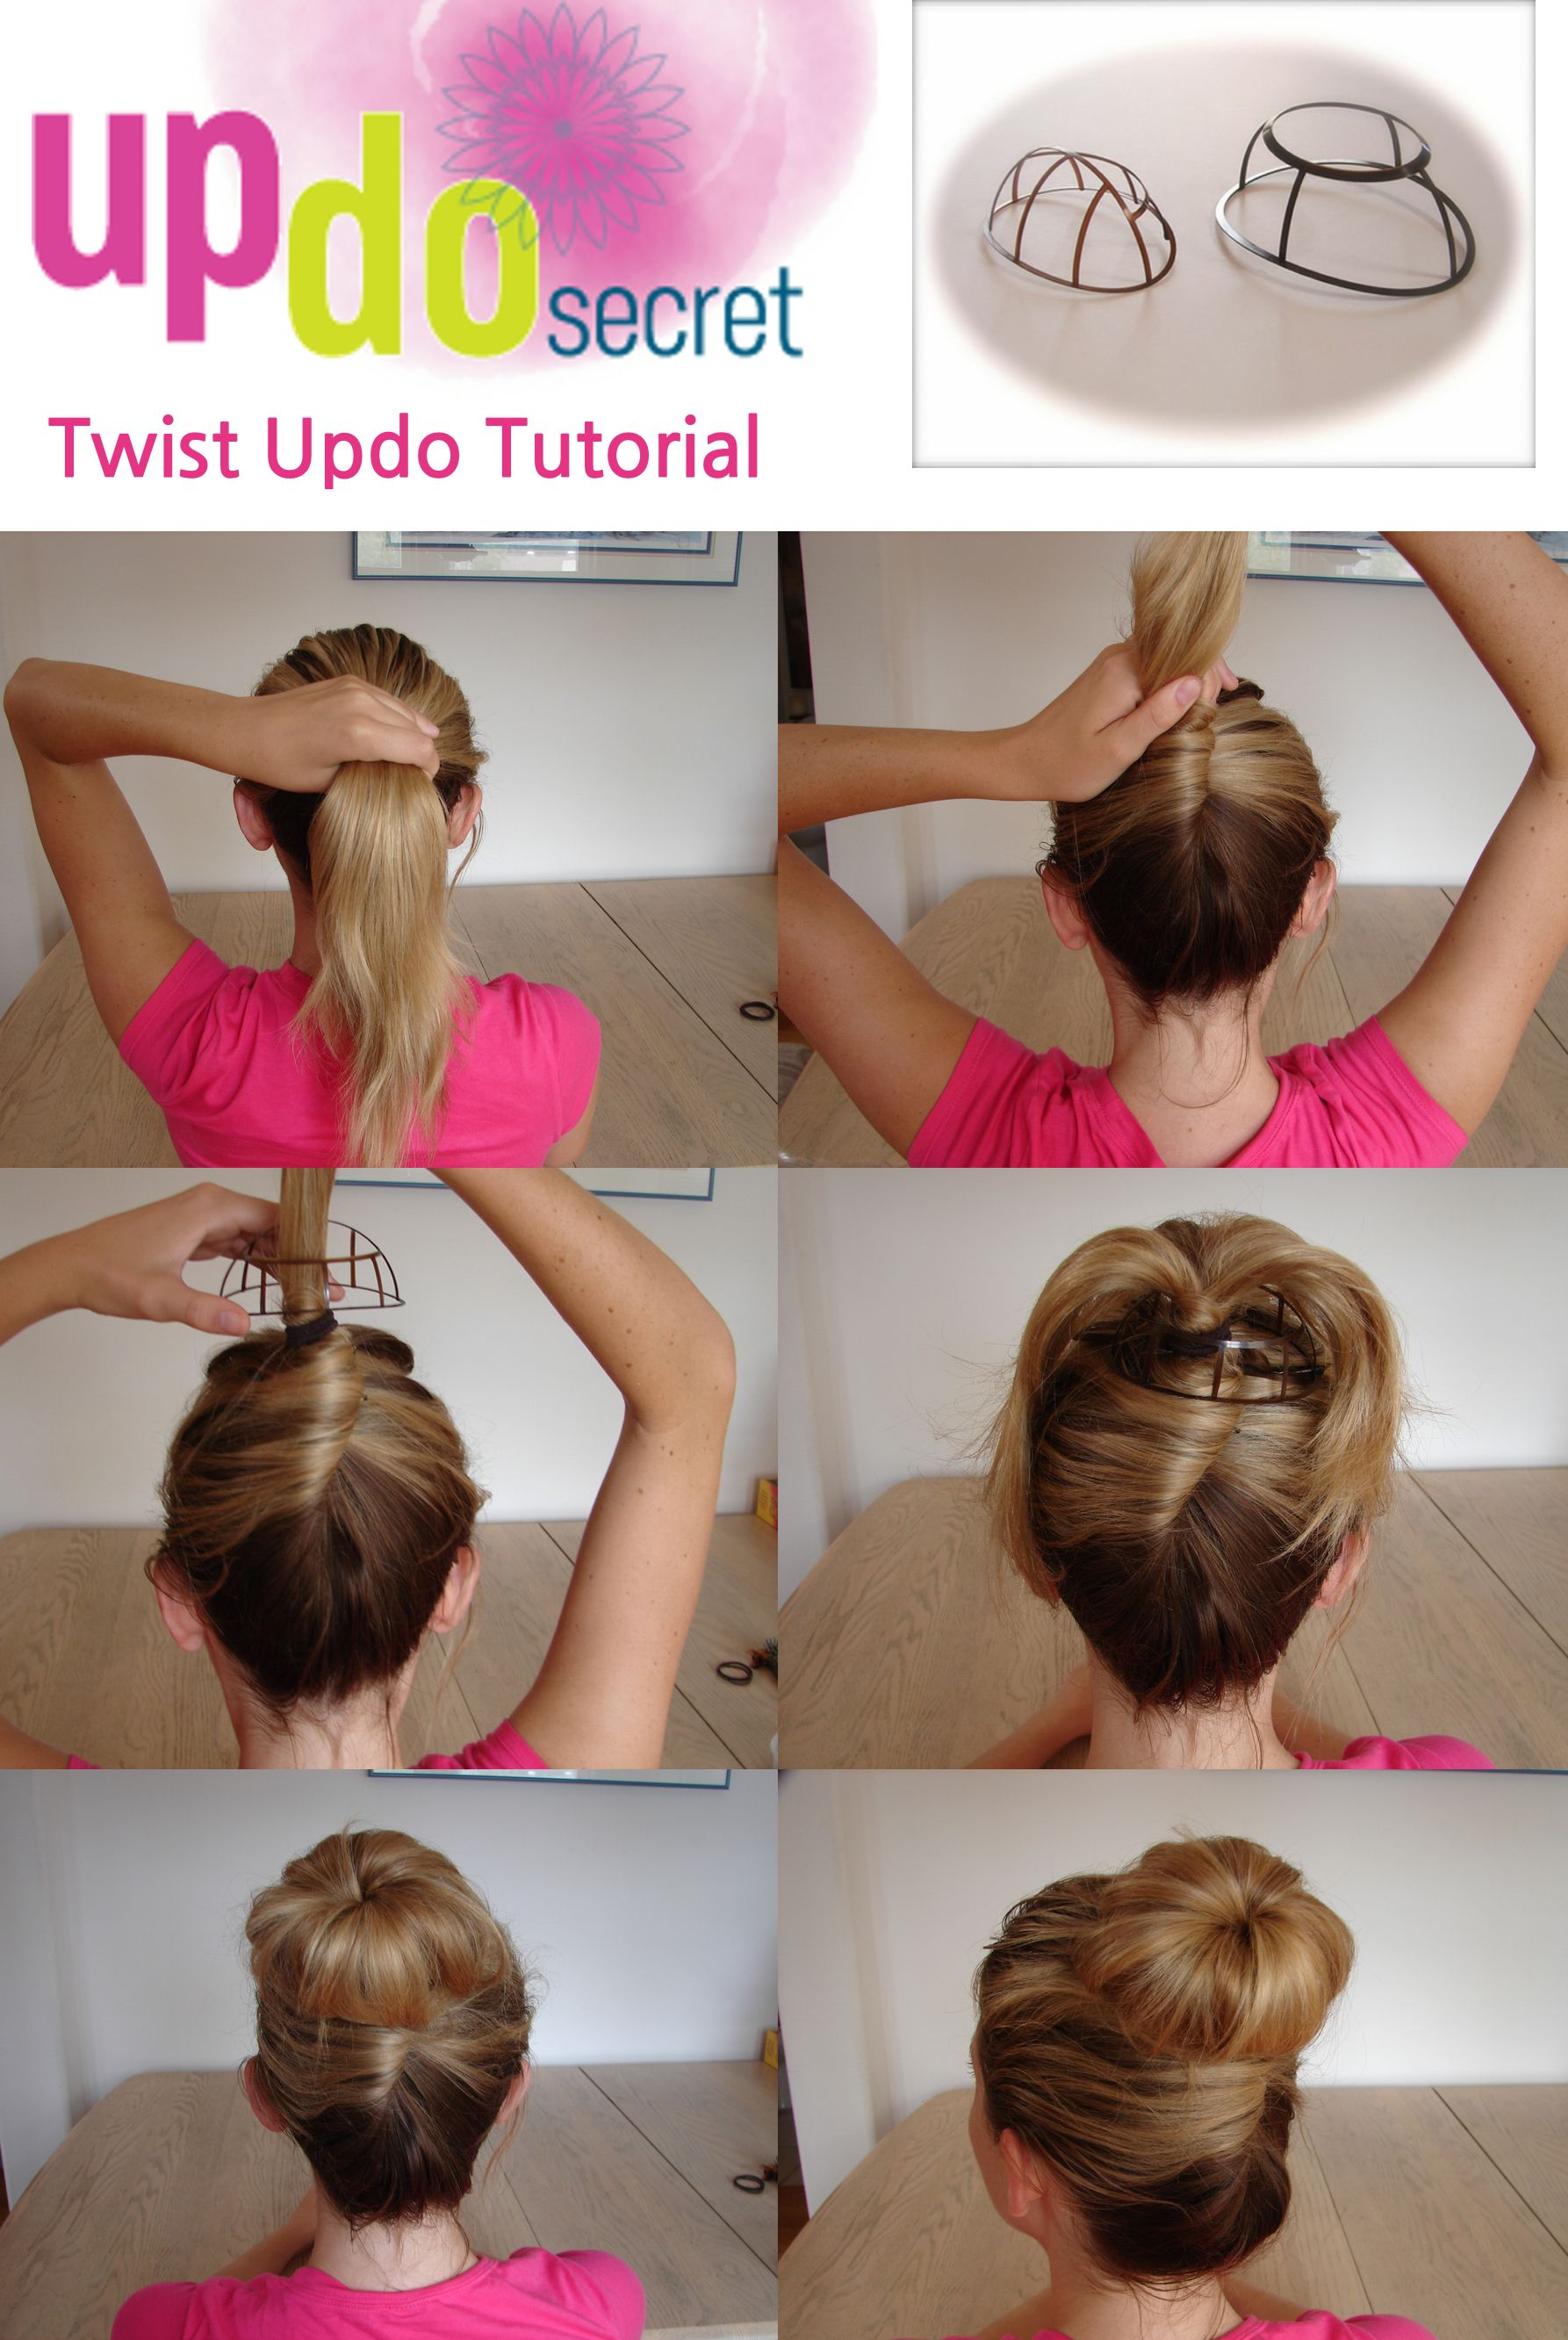 Miraculous Classy Twist Updo For Work Only Takes 5 Steps Using The Updo Hairstyles For Men Maxibearus